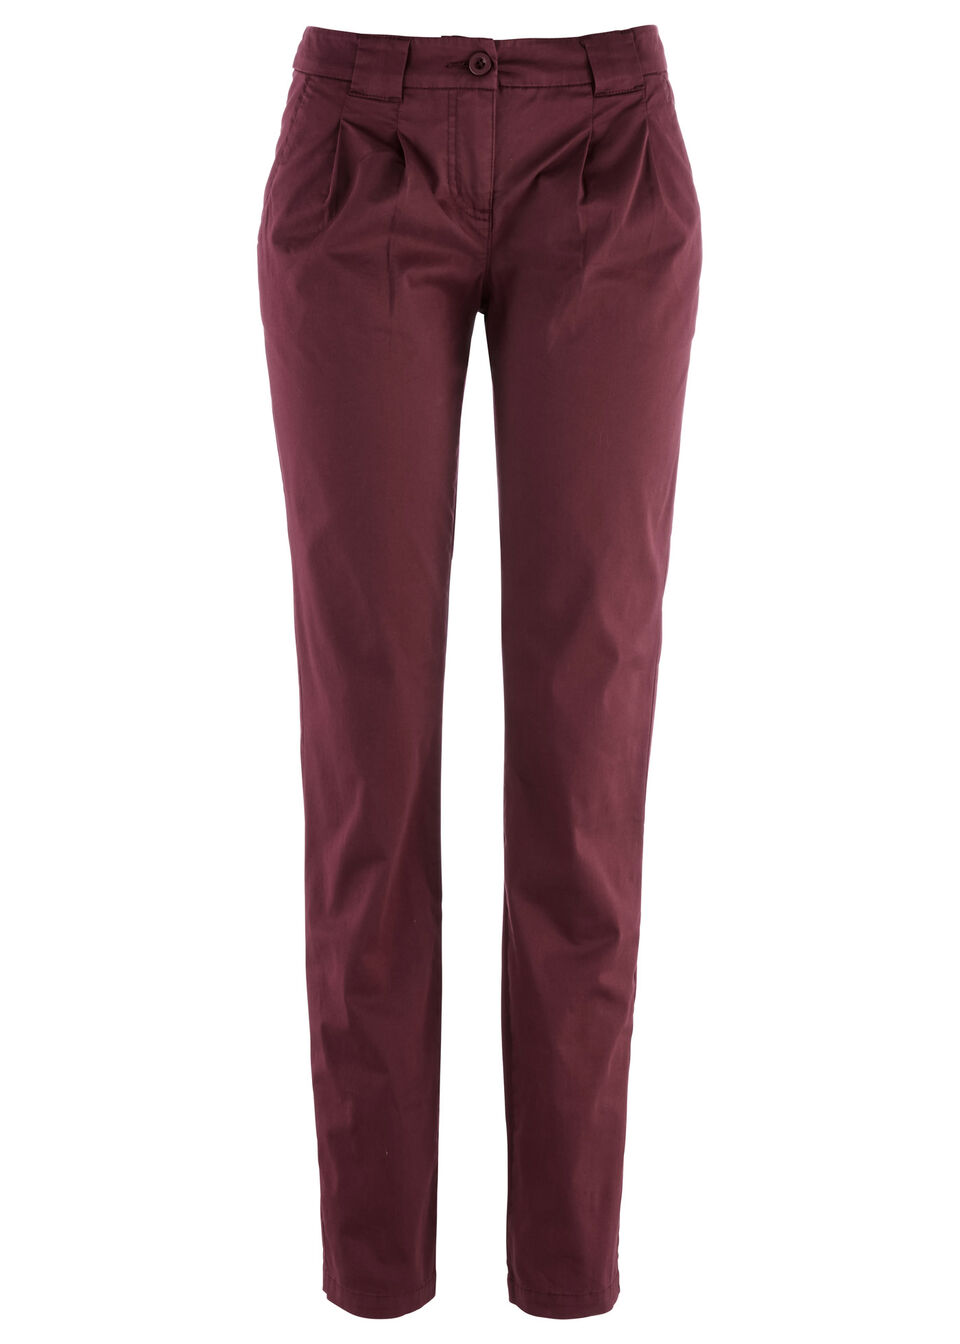 Pantaloni chino stretch bonprix